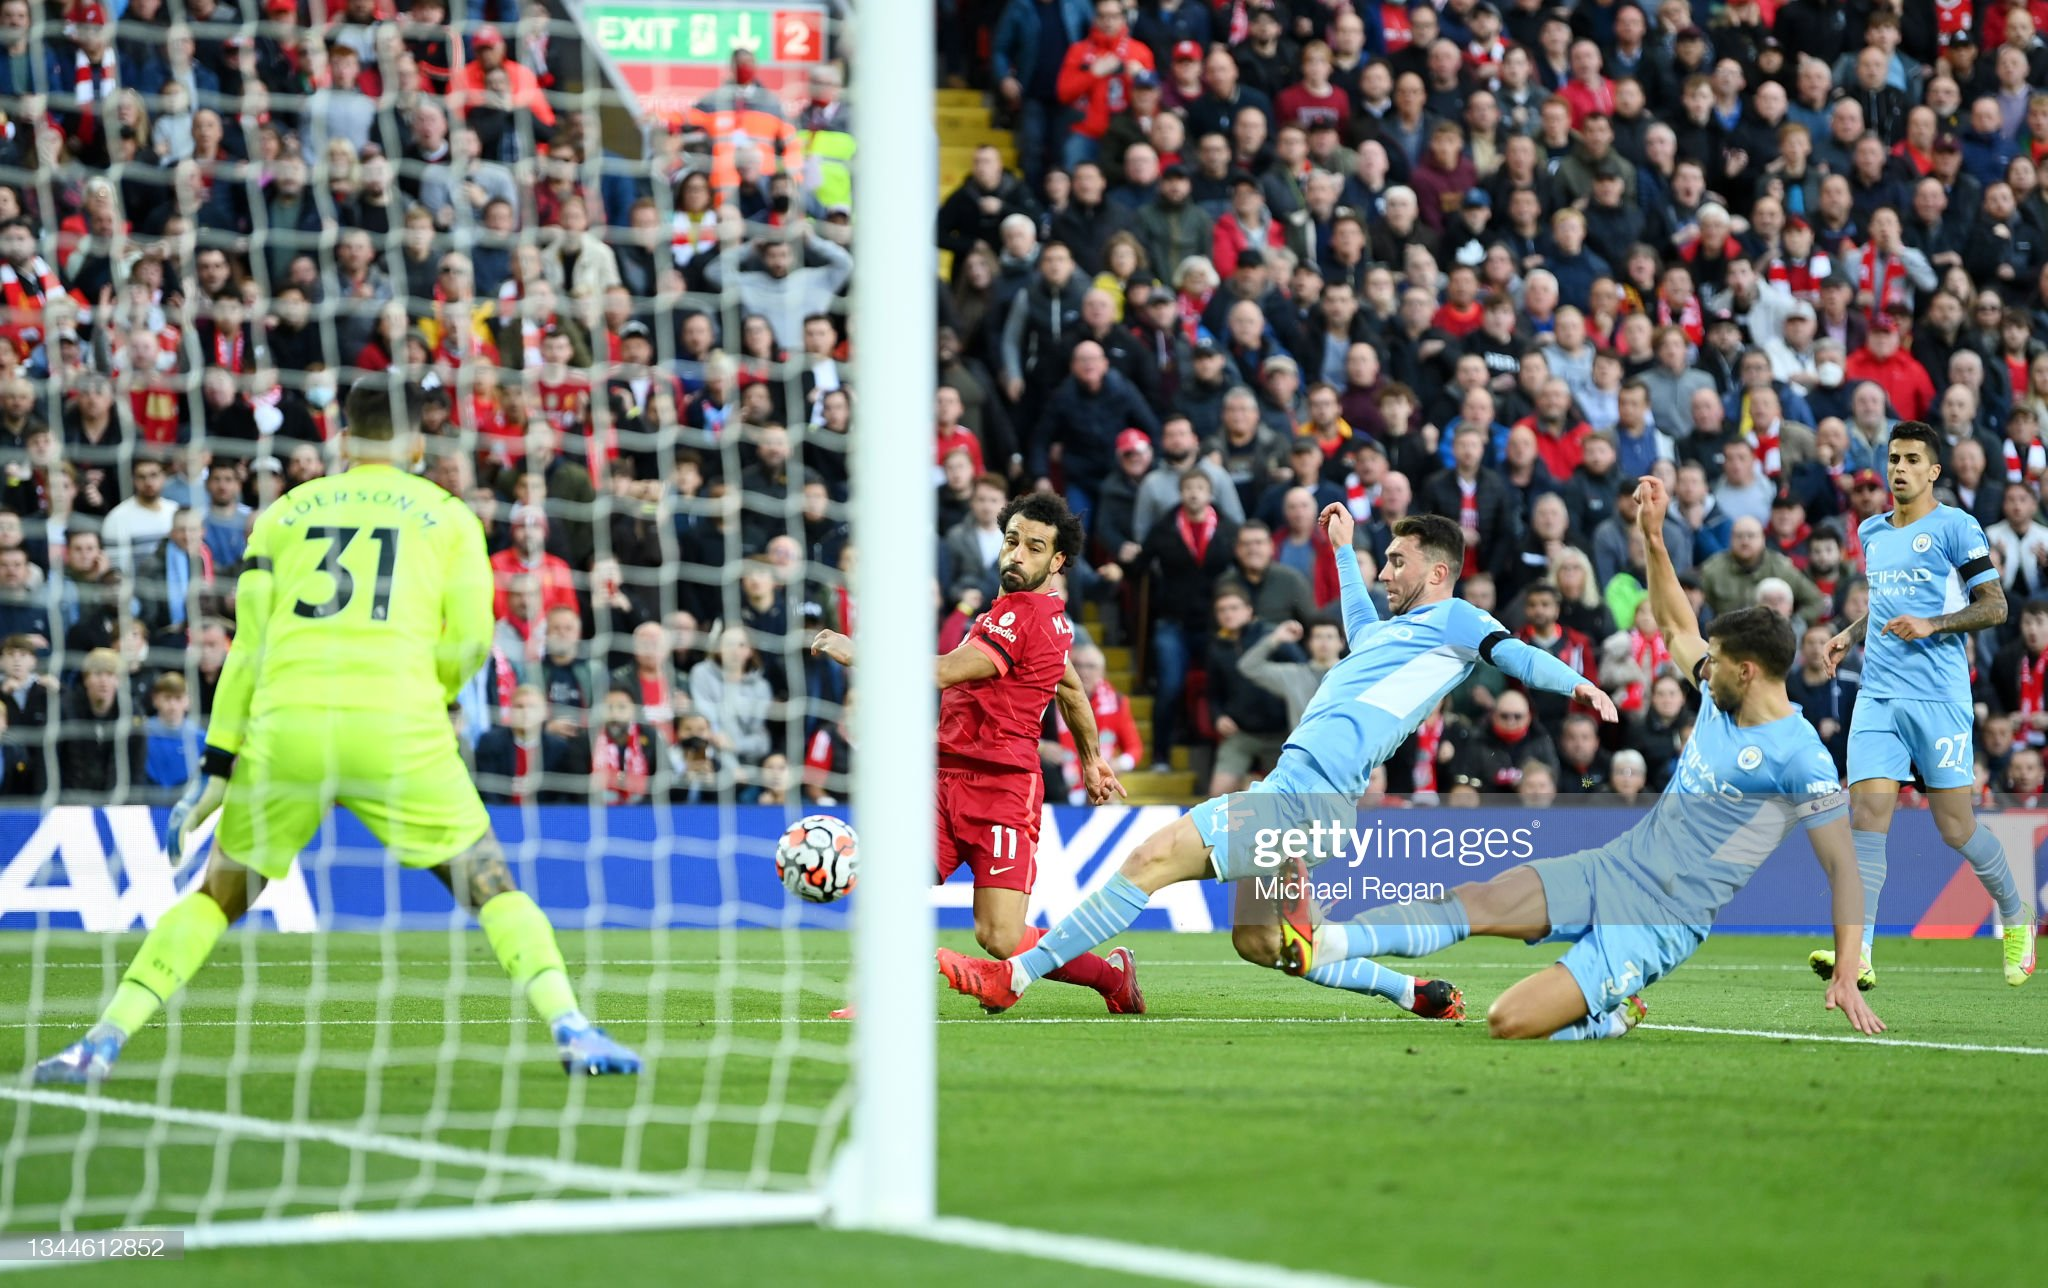 A fair result in Anfield cracker